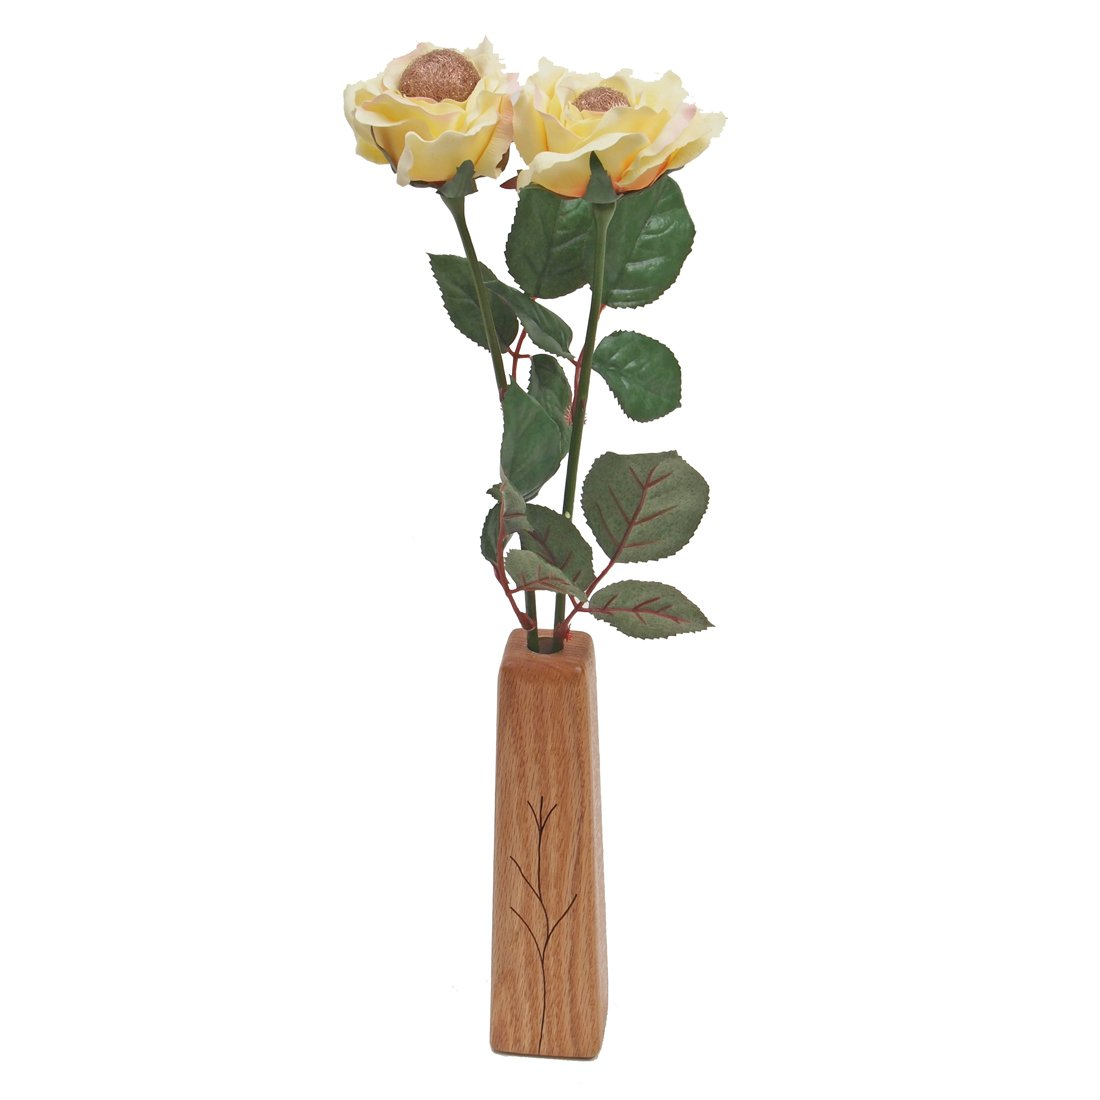 2-Stem Silk Roses with Vase JustPaperRoses 12th Year Wedding Perfect Present for Wife or Husband AX-AY-ABHI-59584